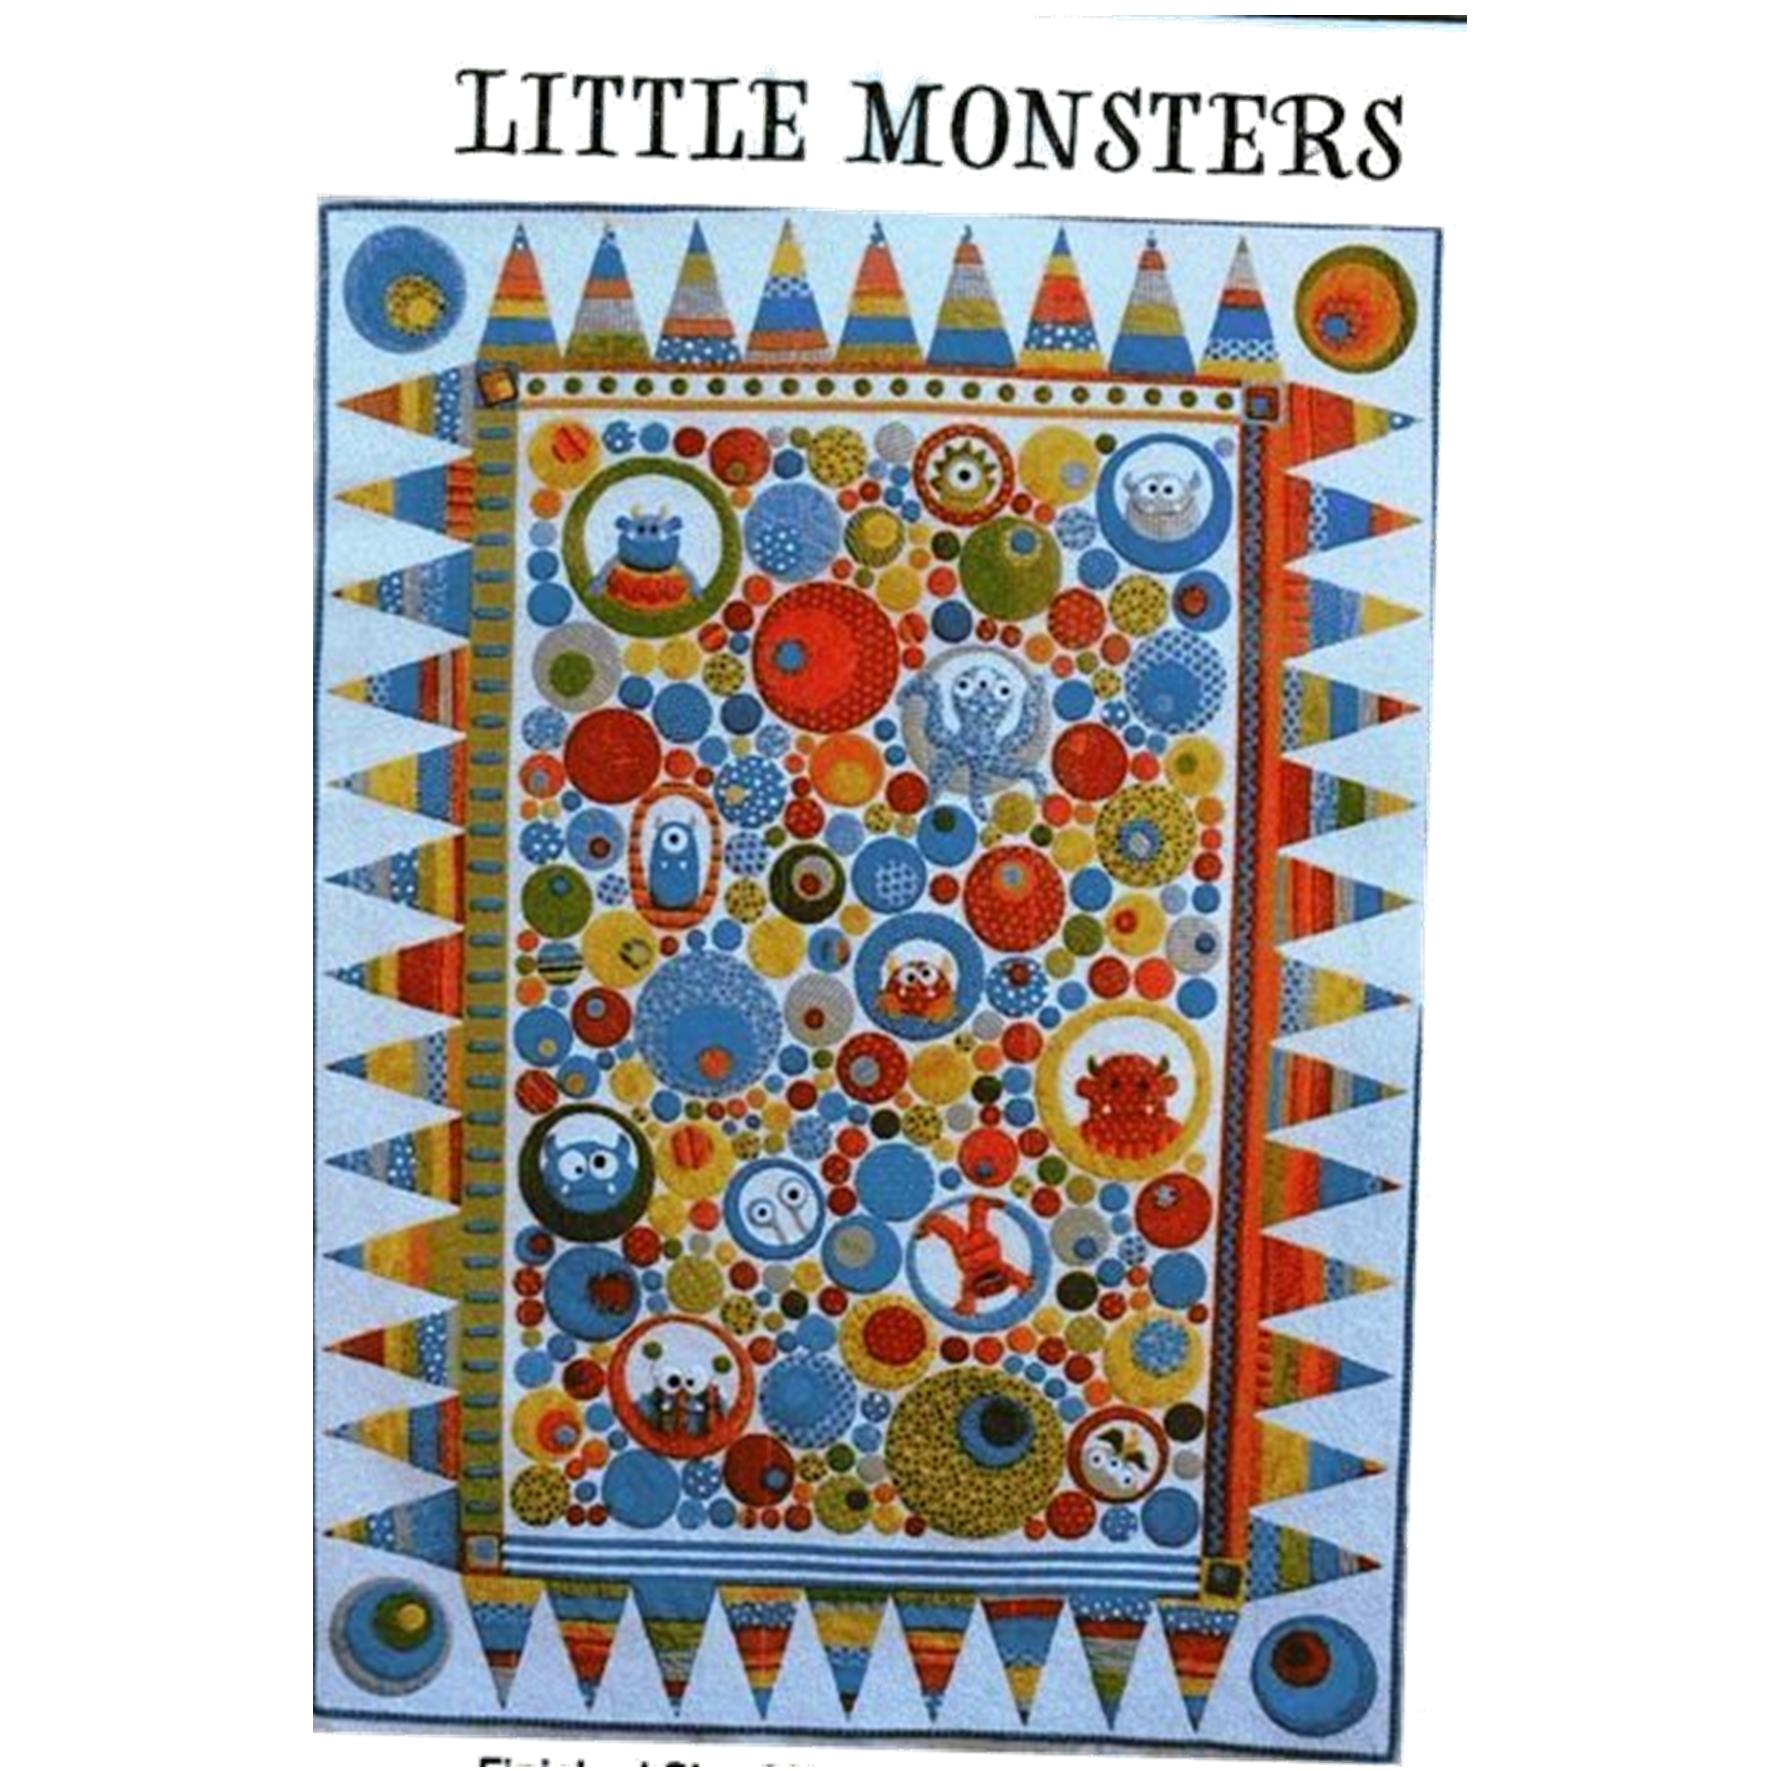 Little Monsters by Don't Look Now